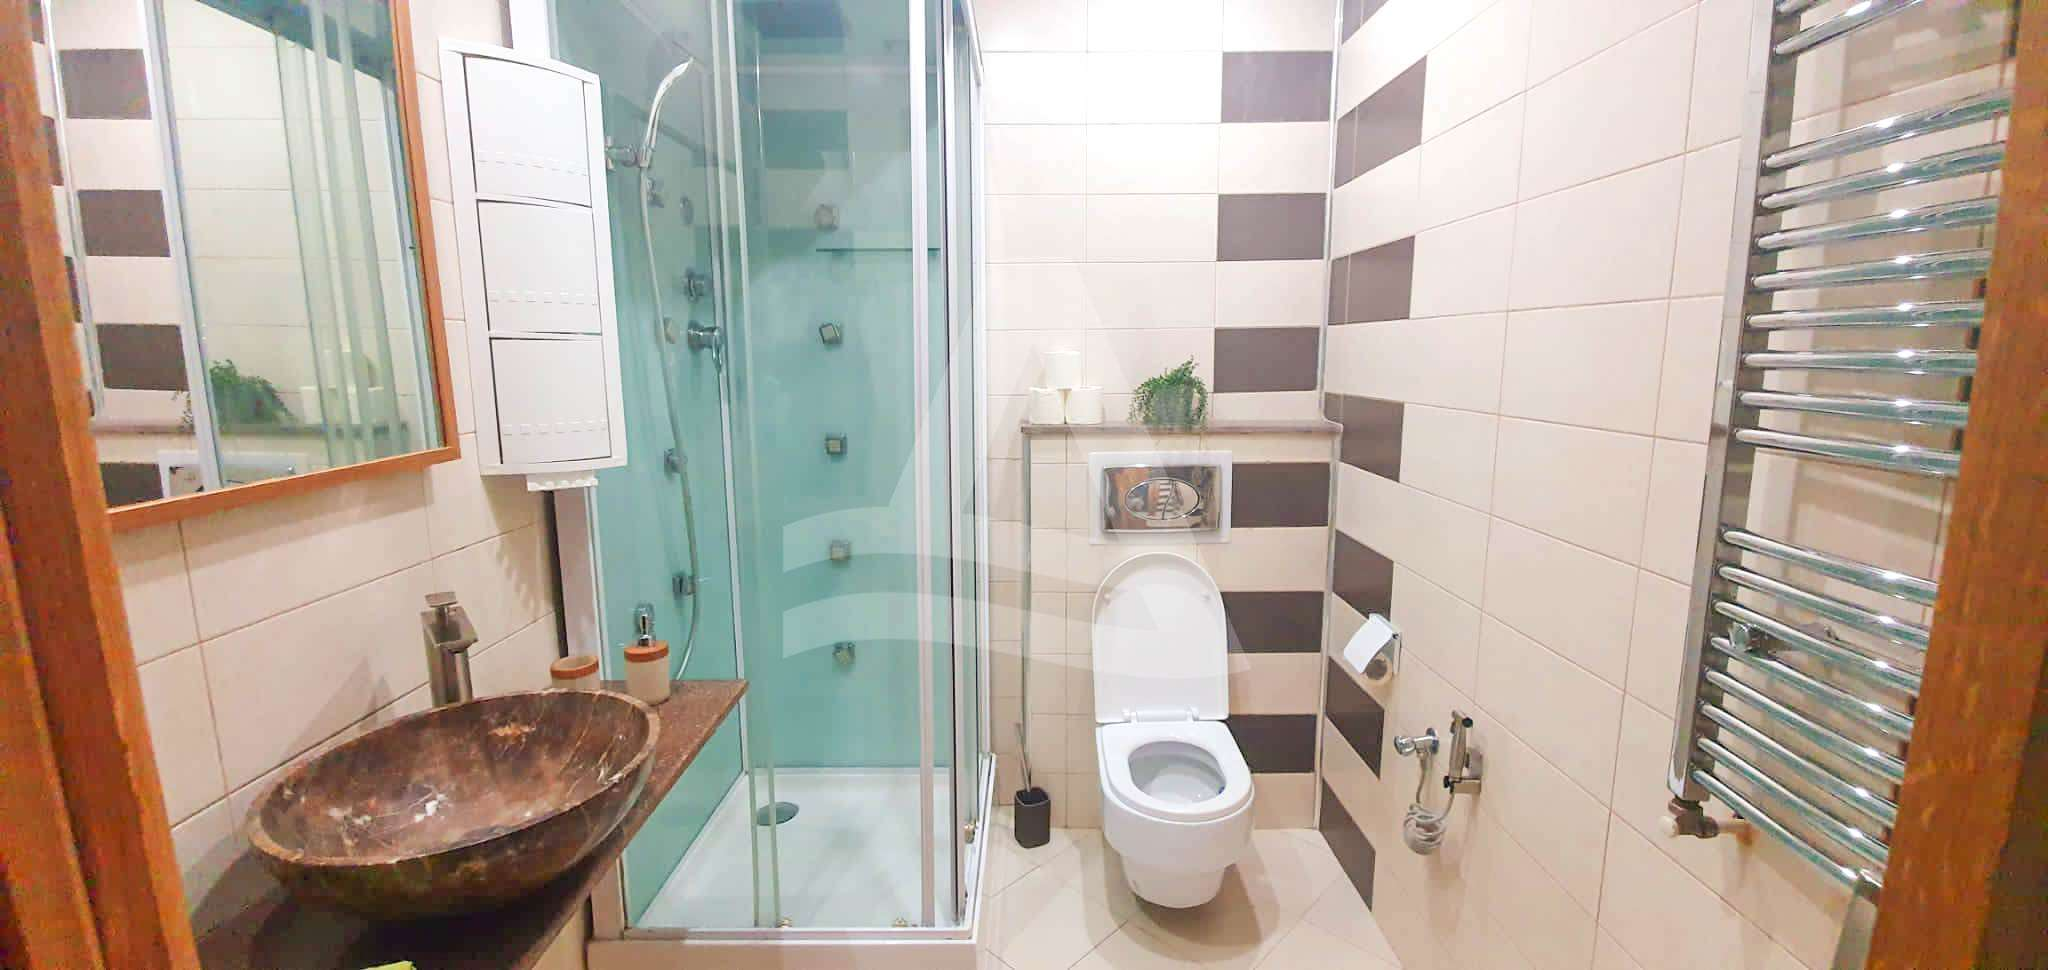 httpss3.amazonaws.comlogimoaws12151274951631090107appartement_lac_2_7_sur_8-1